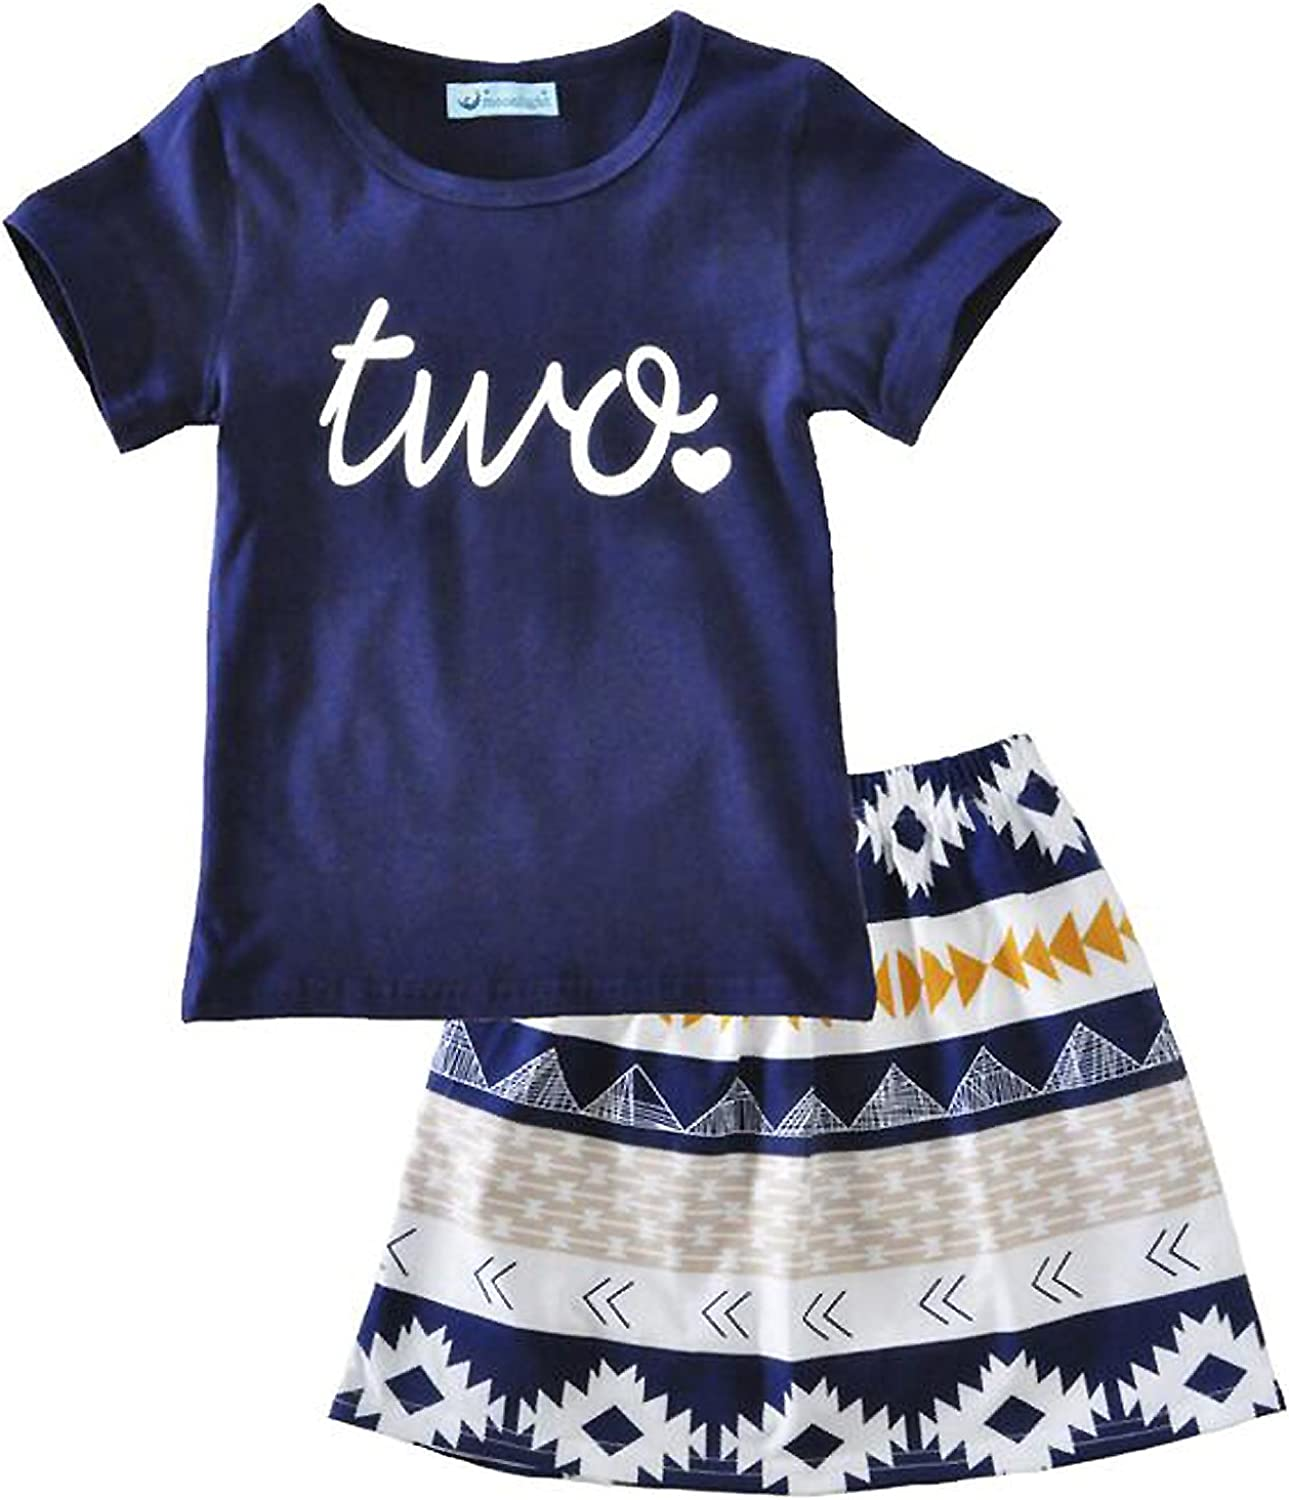 FAYALEQ Toddler Baby Girls Birthday Outfits Letter Print Short Sleeve Tops and Skirt Clothes Party Dress Set